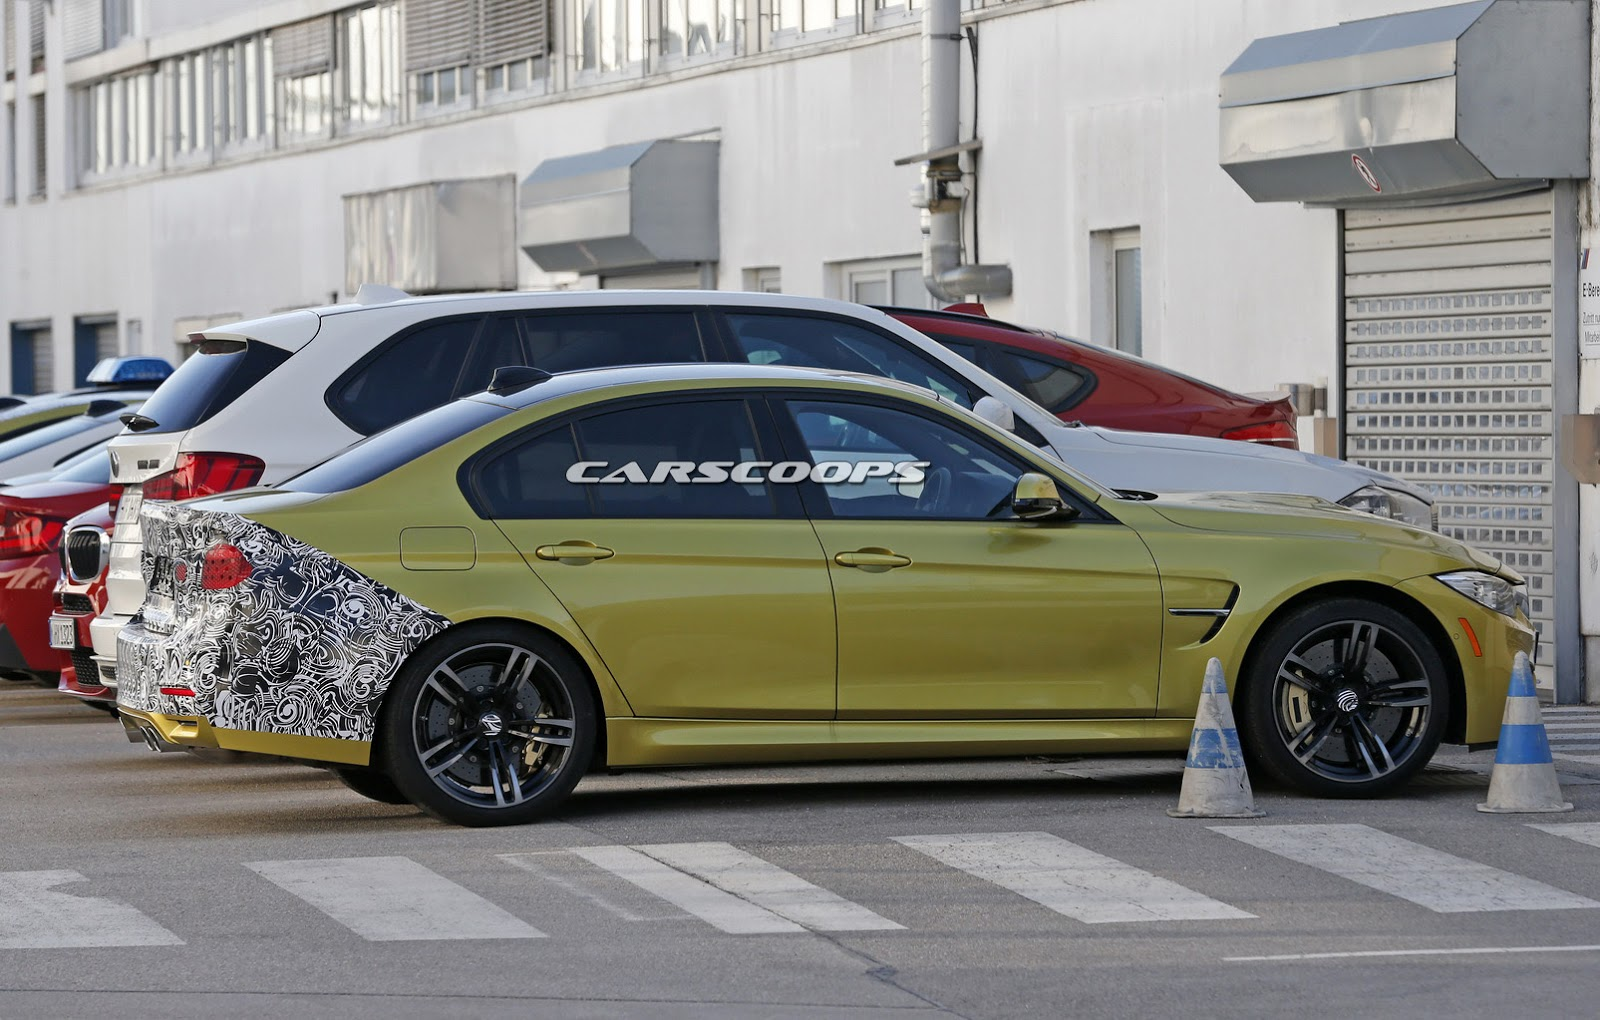 Facelifted Bmw M3 Sedan Spied Testing Gtspirit